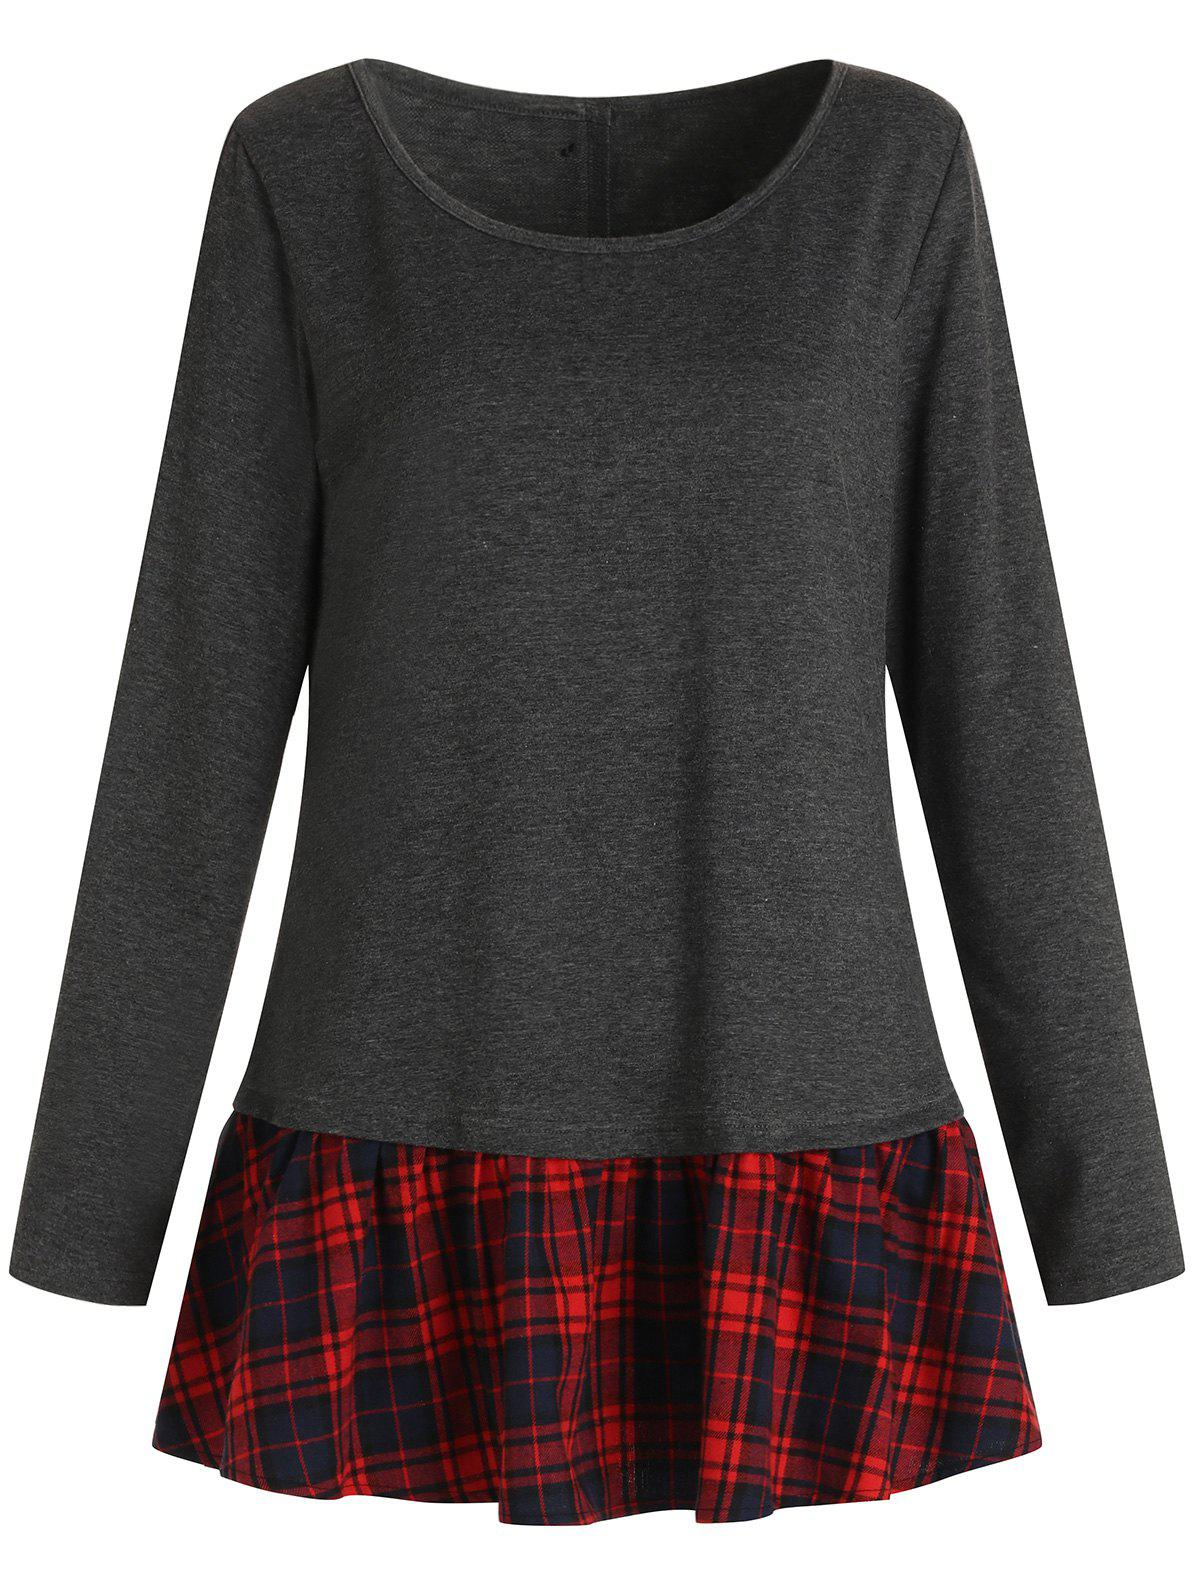 Plaid Insert T-shirt